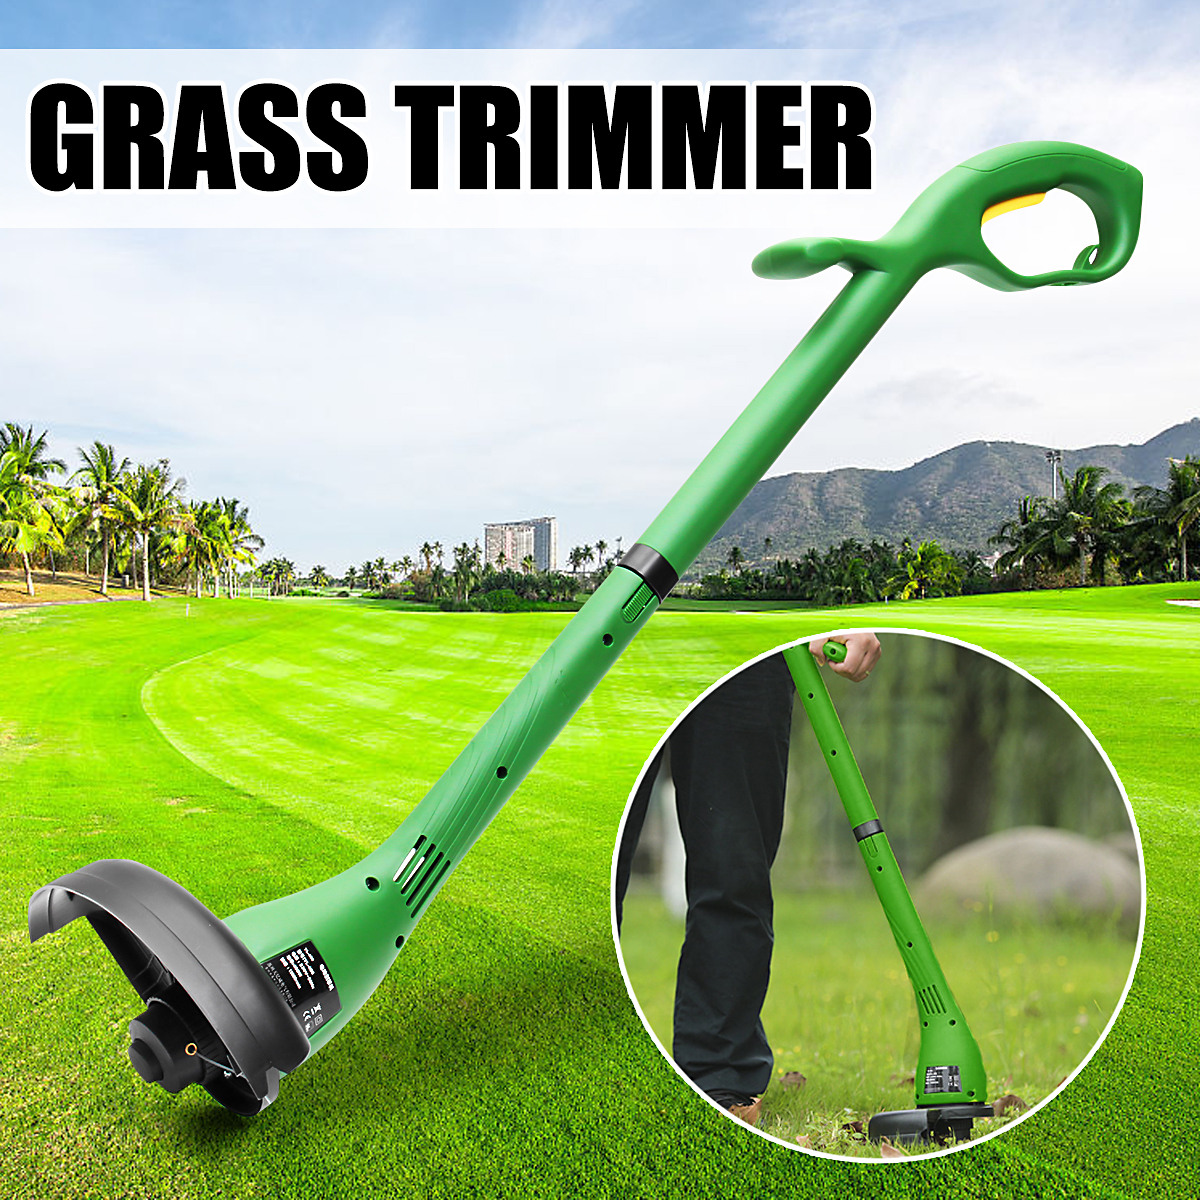 цена на 400W Electric Grass Trimmer Heavy Duty 230mm Cutting Home Garden Machine Power Tool Grass Cutter Pruning Line Trimmer Lawn Mower